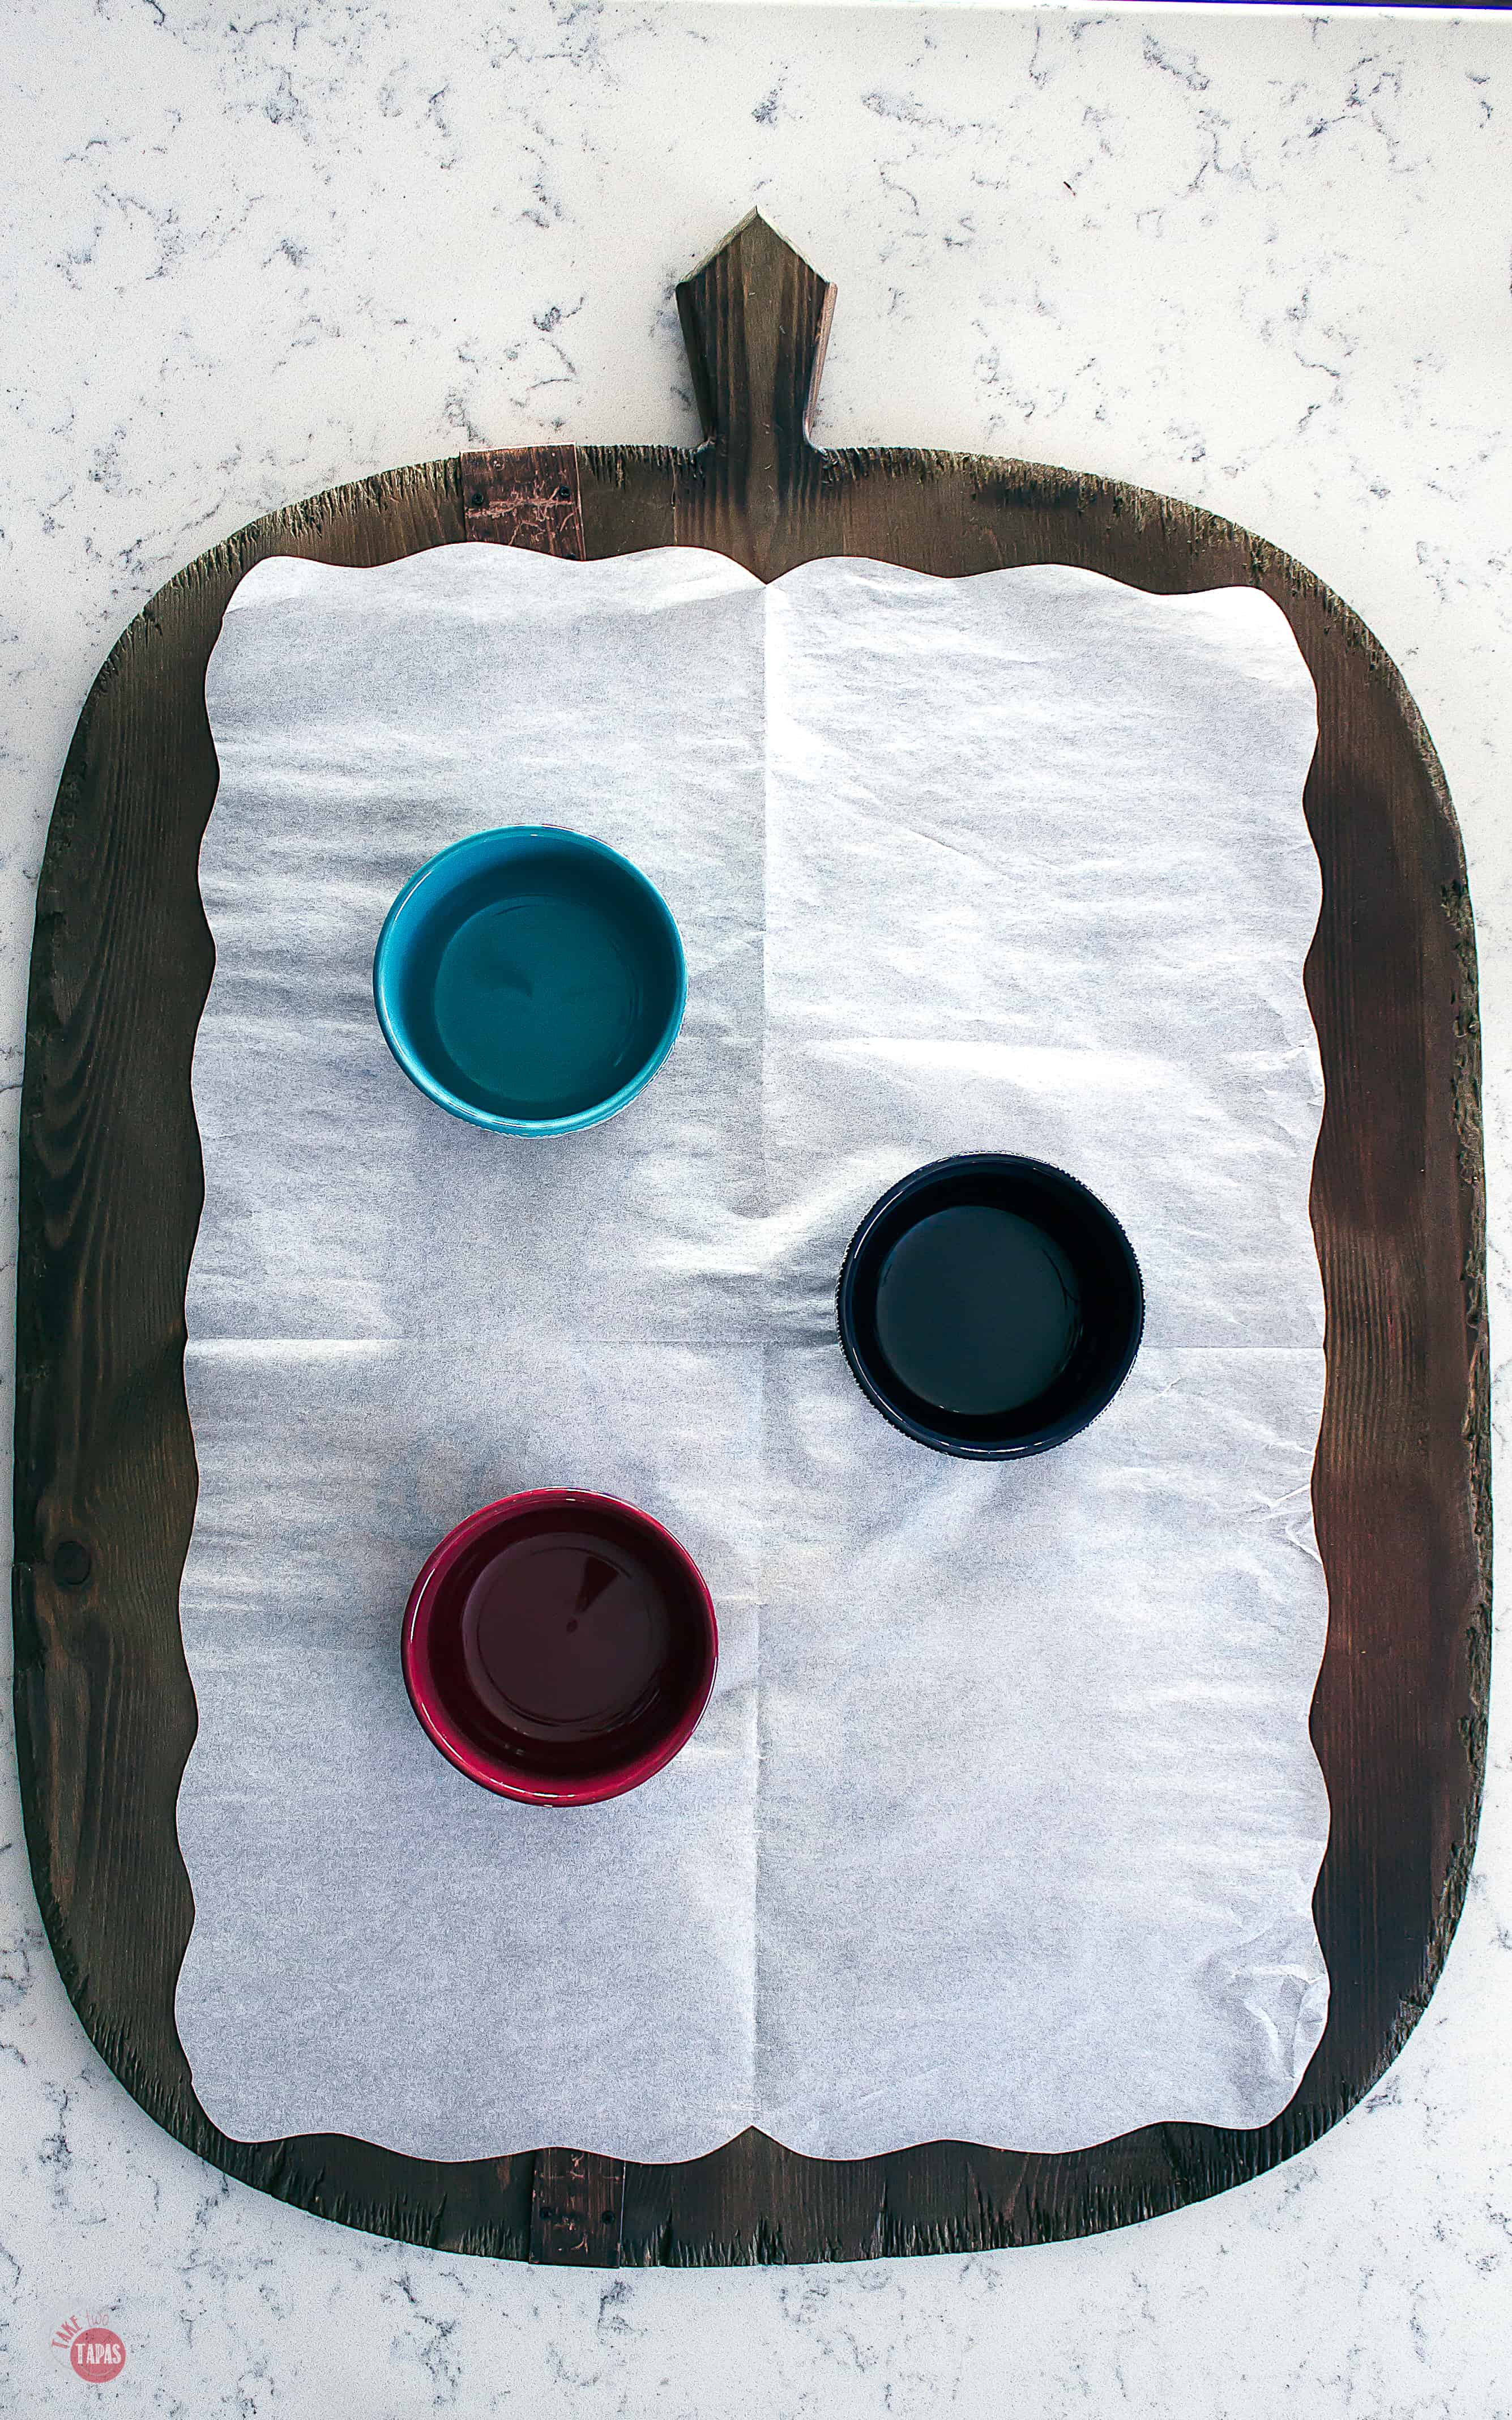 parchment paper and bowls on a platter